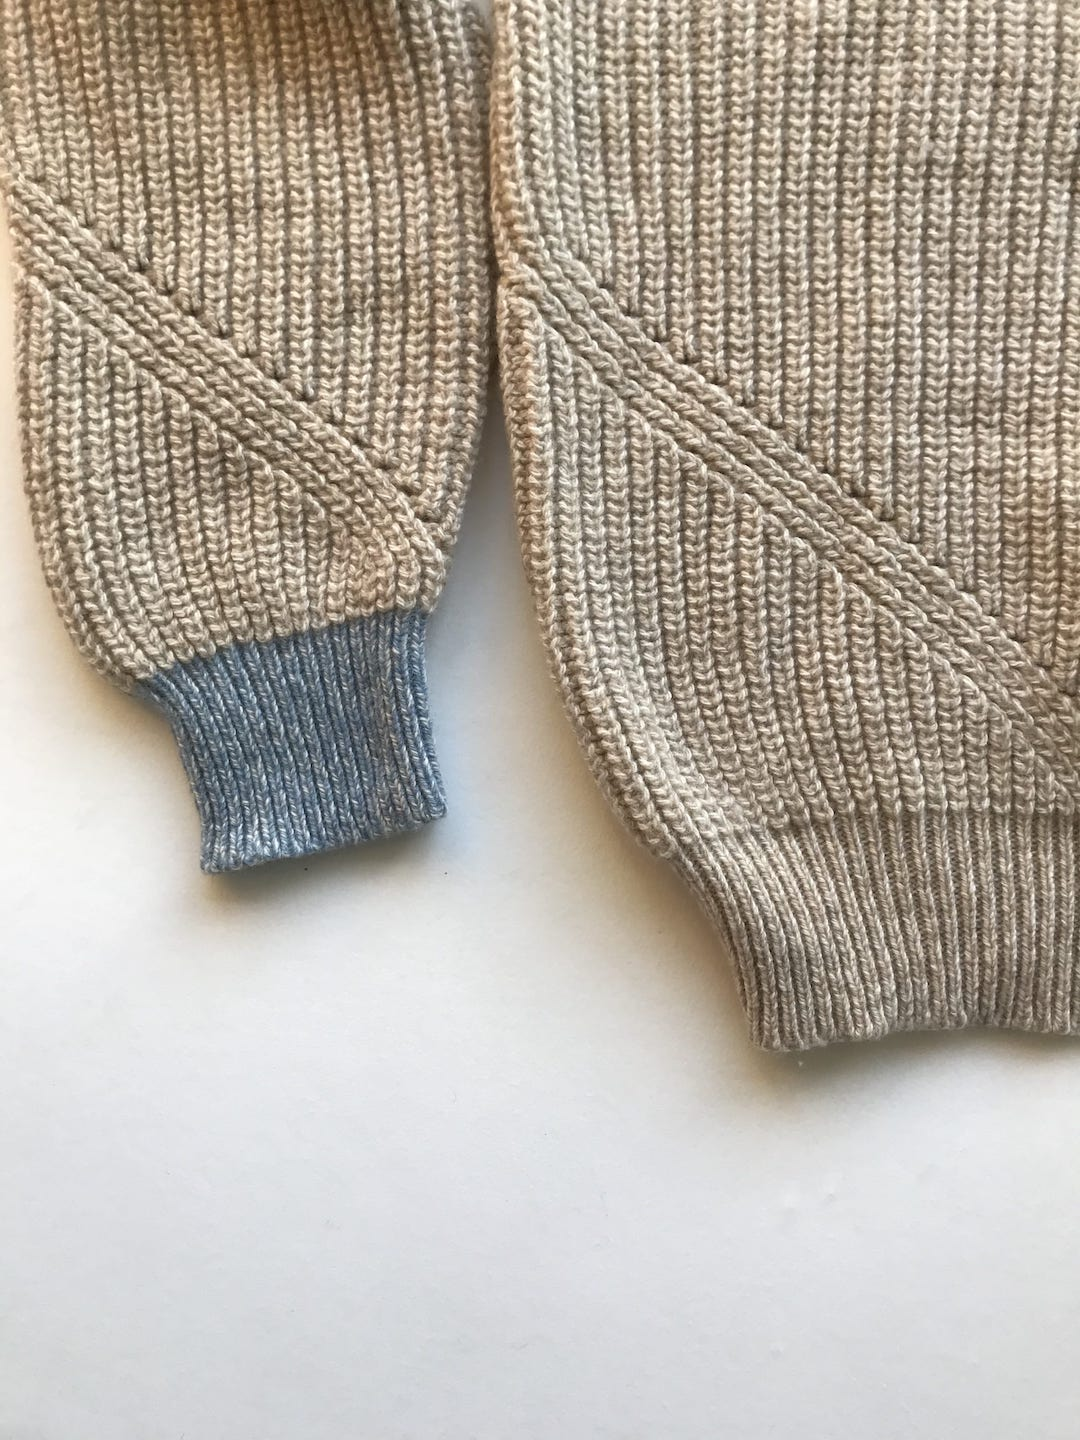 Fishermans Rib Cashmere Sweater - Special edition Caramel with Blue cuffs